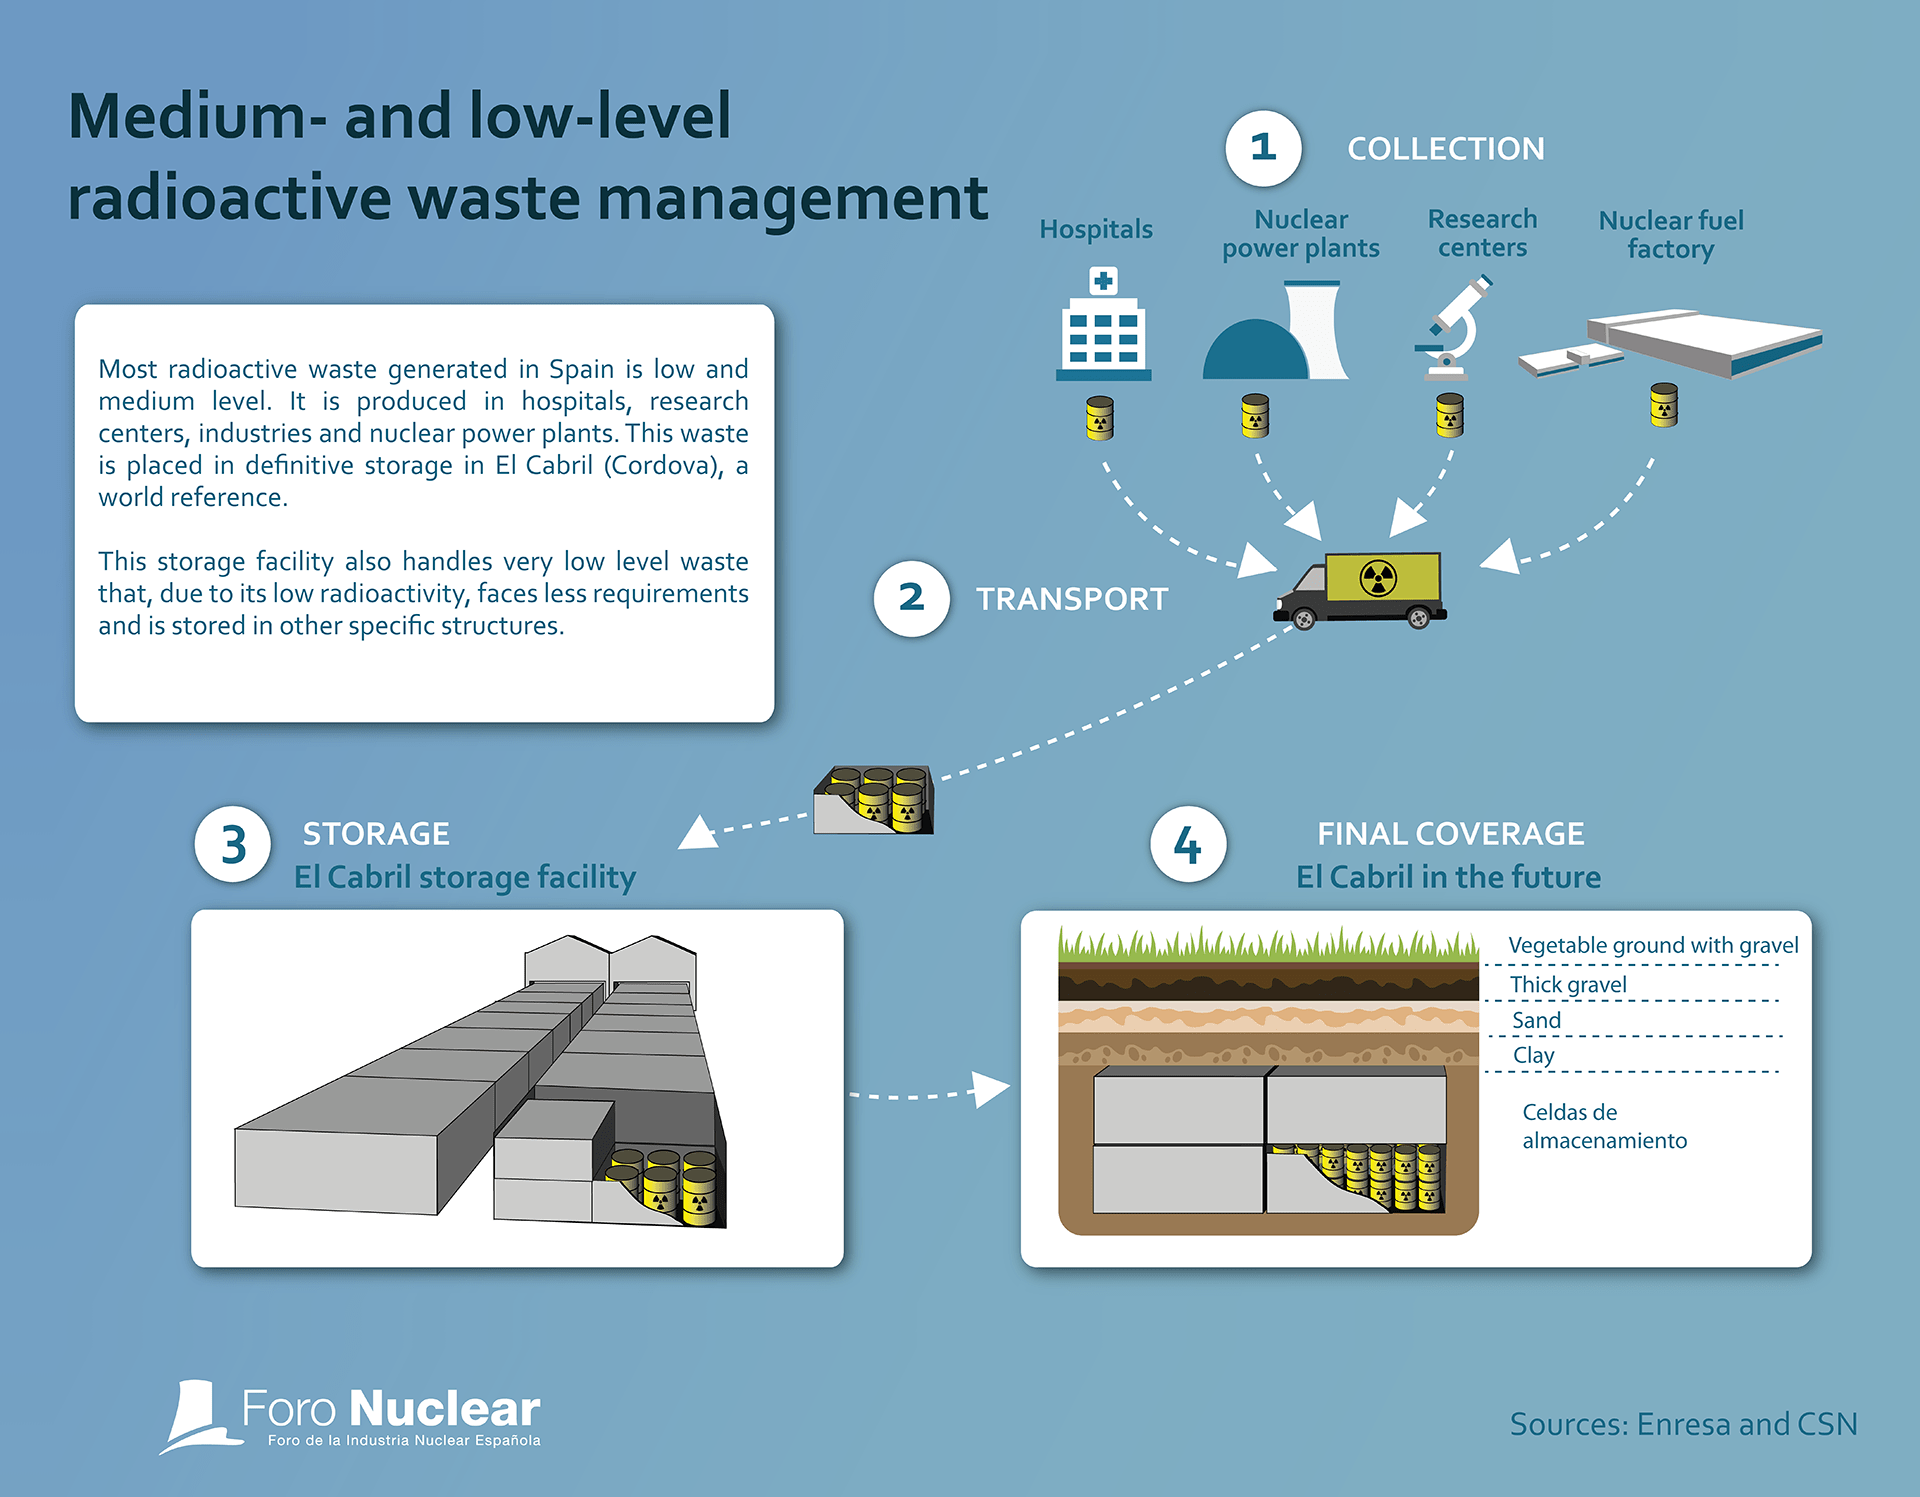 Medium and low level radioactive waste storage